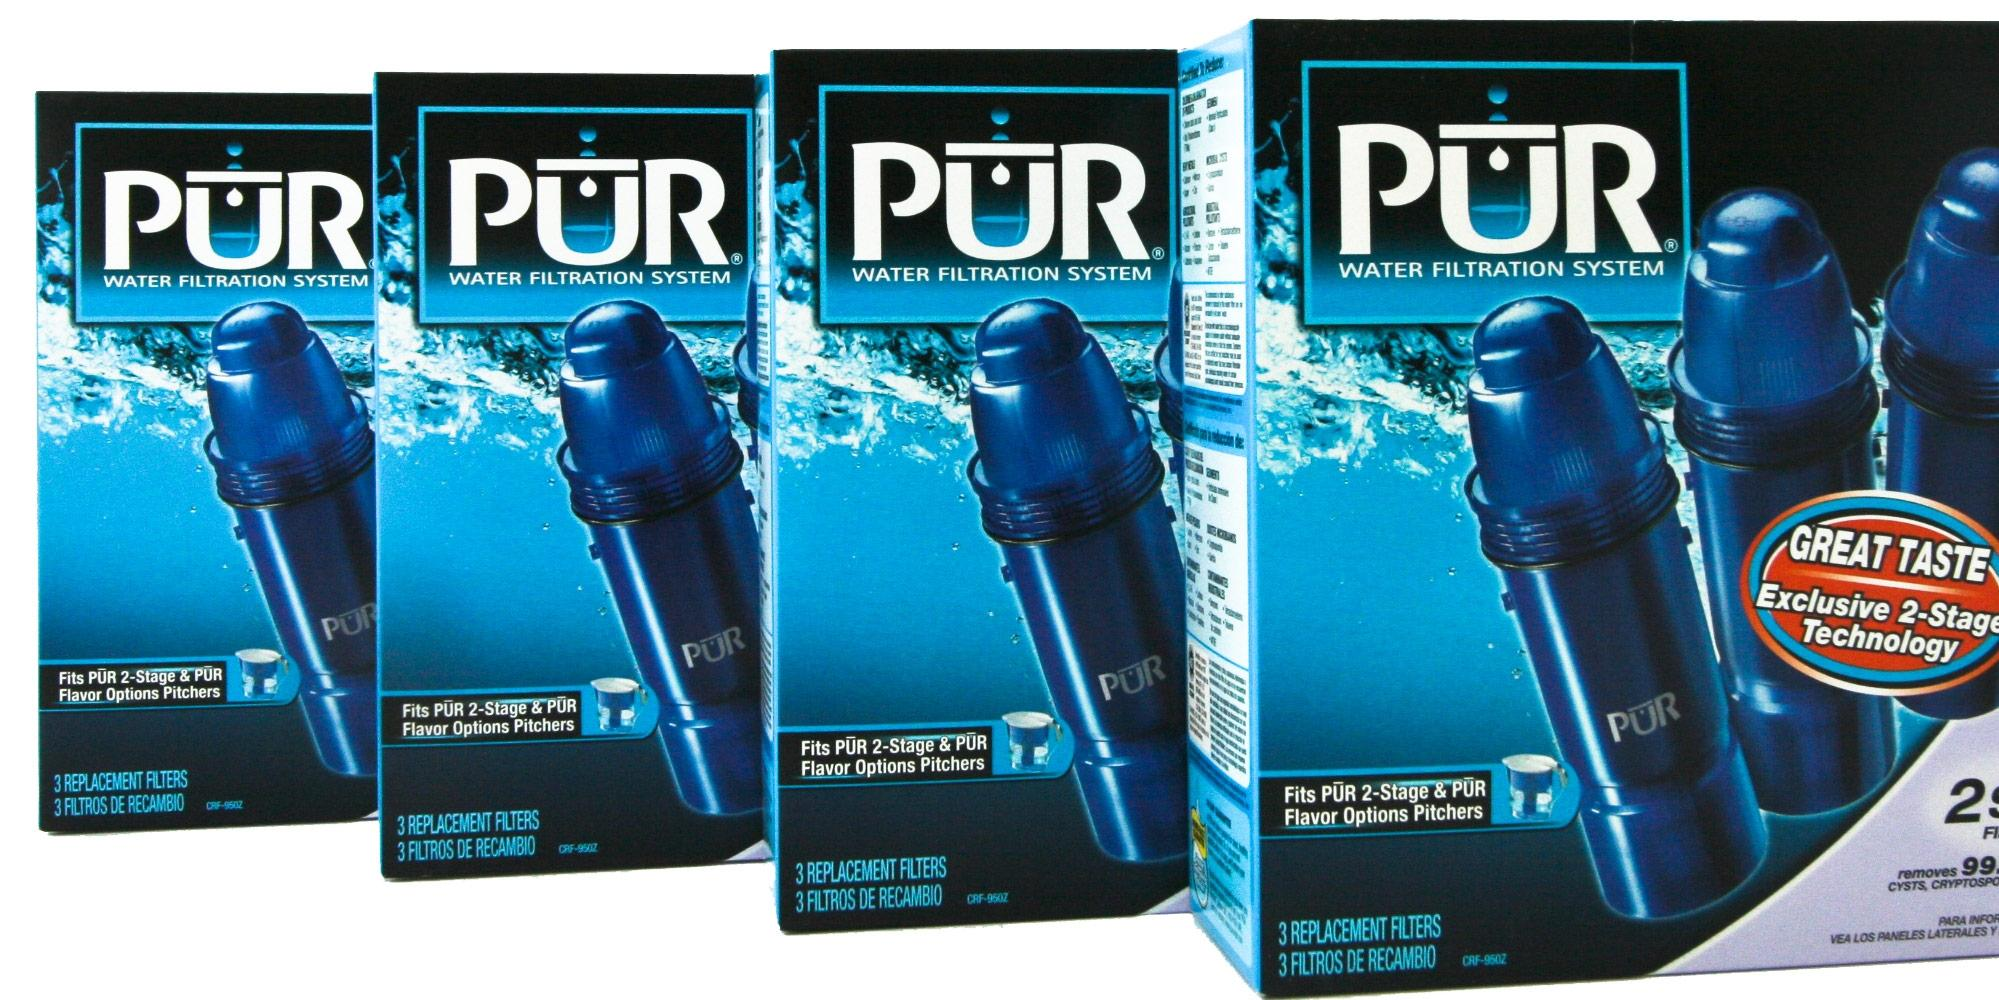 PUR Replacement Filters - 2 Stage & 3 Stage Water Filters